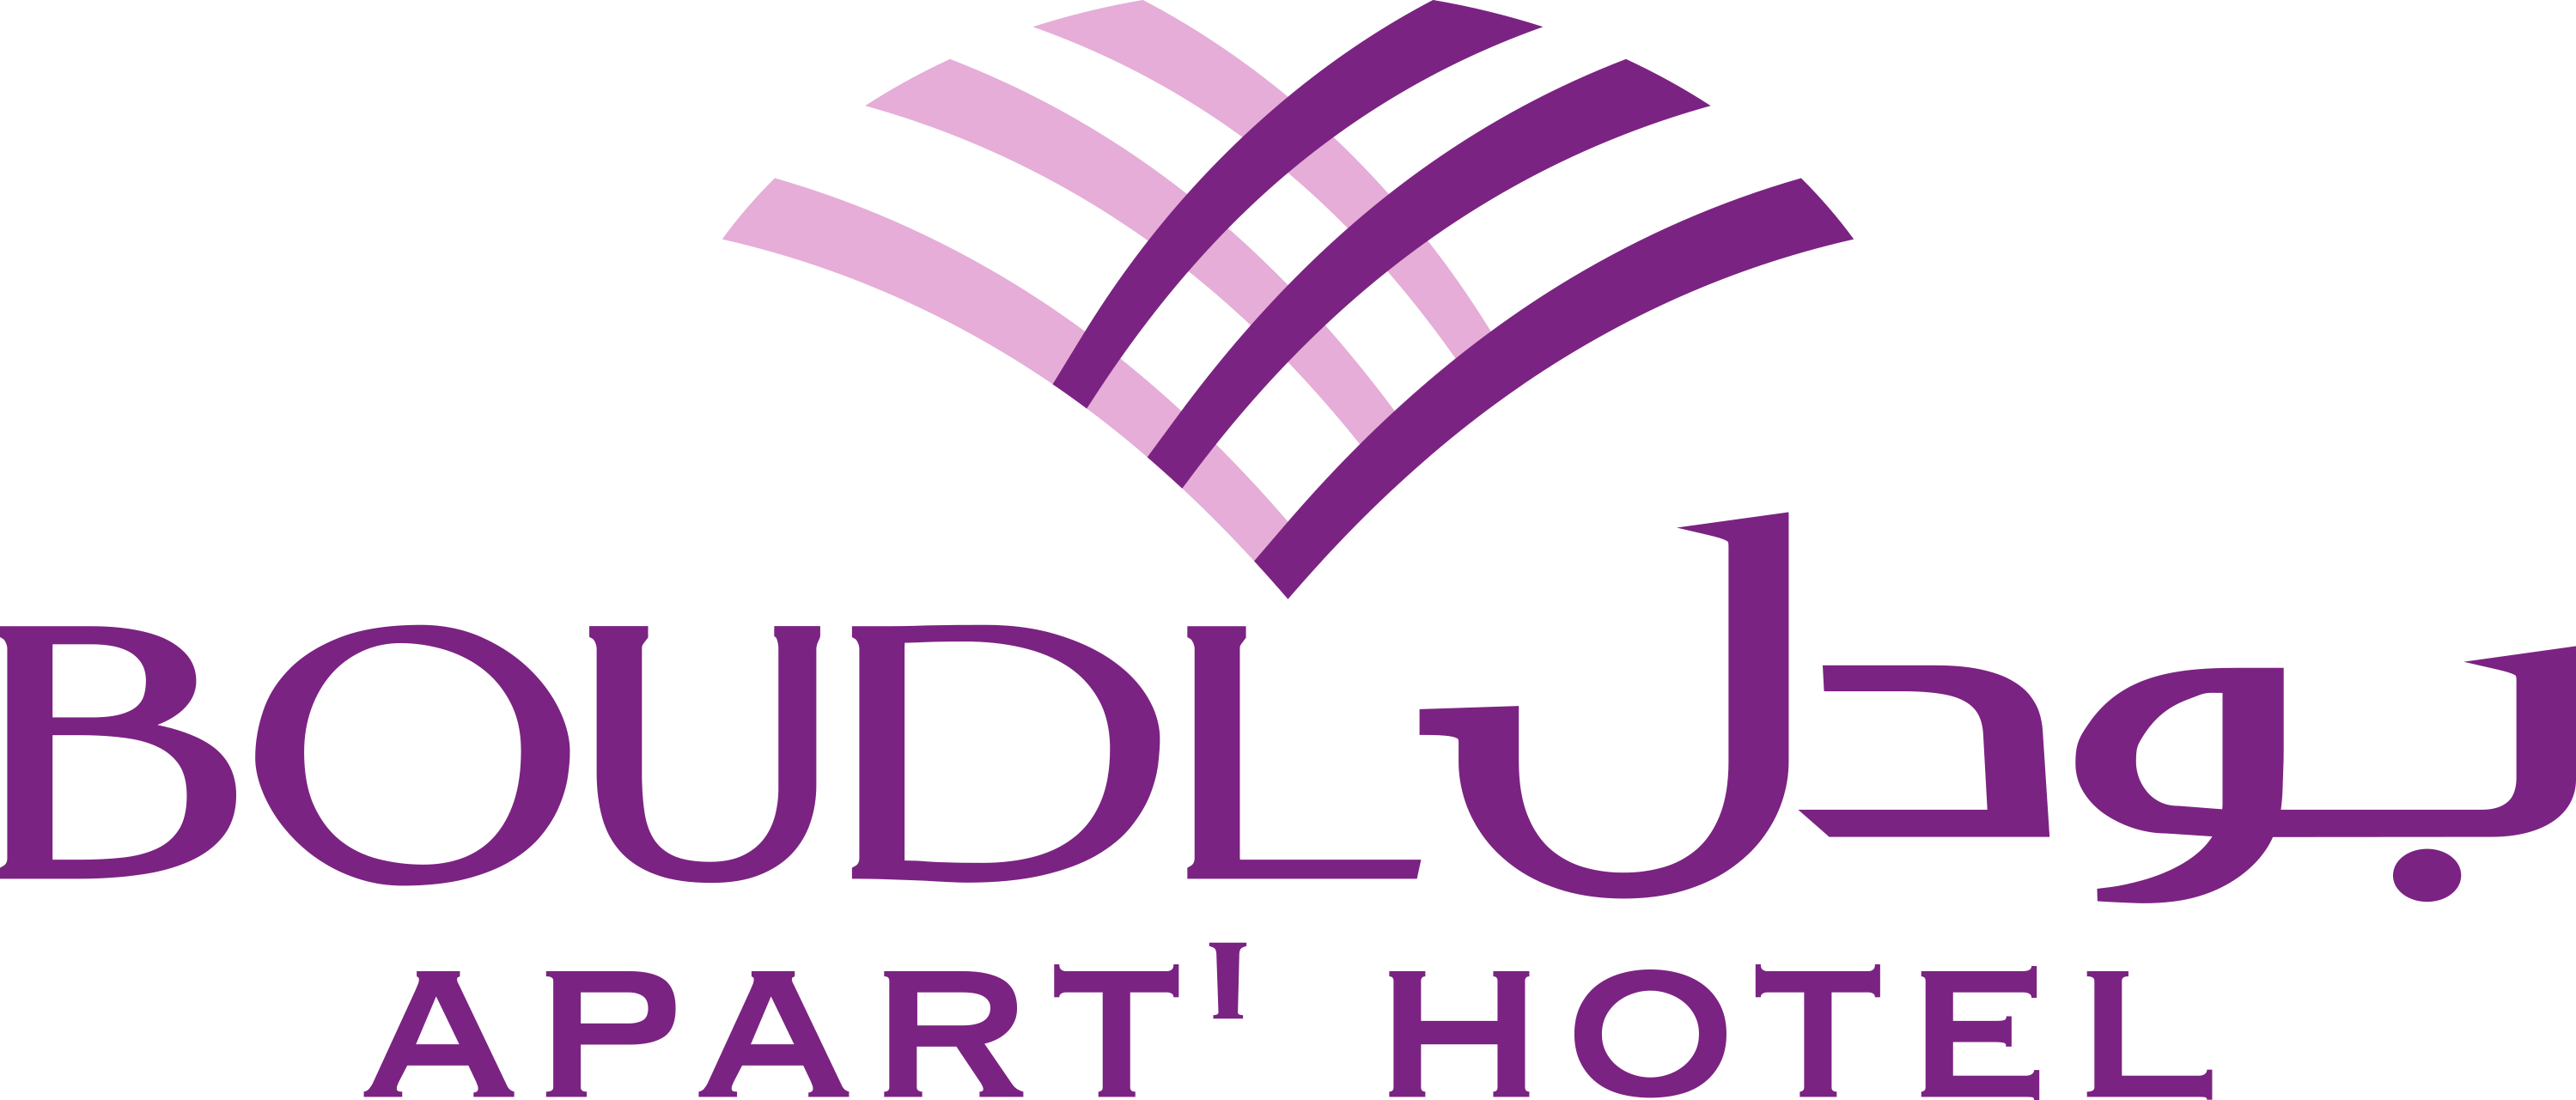 Image result for Boudle Group of Hotel, Saudi Arabia